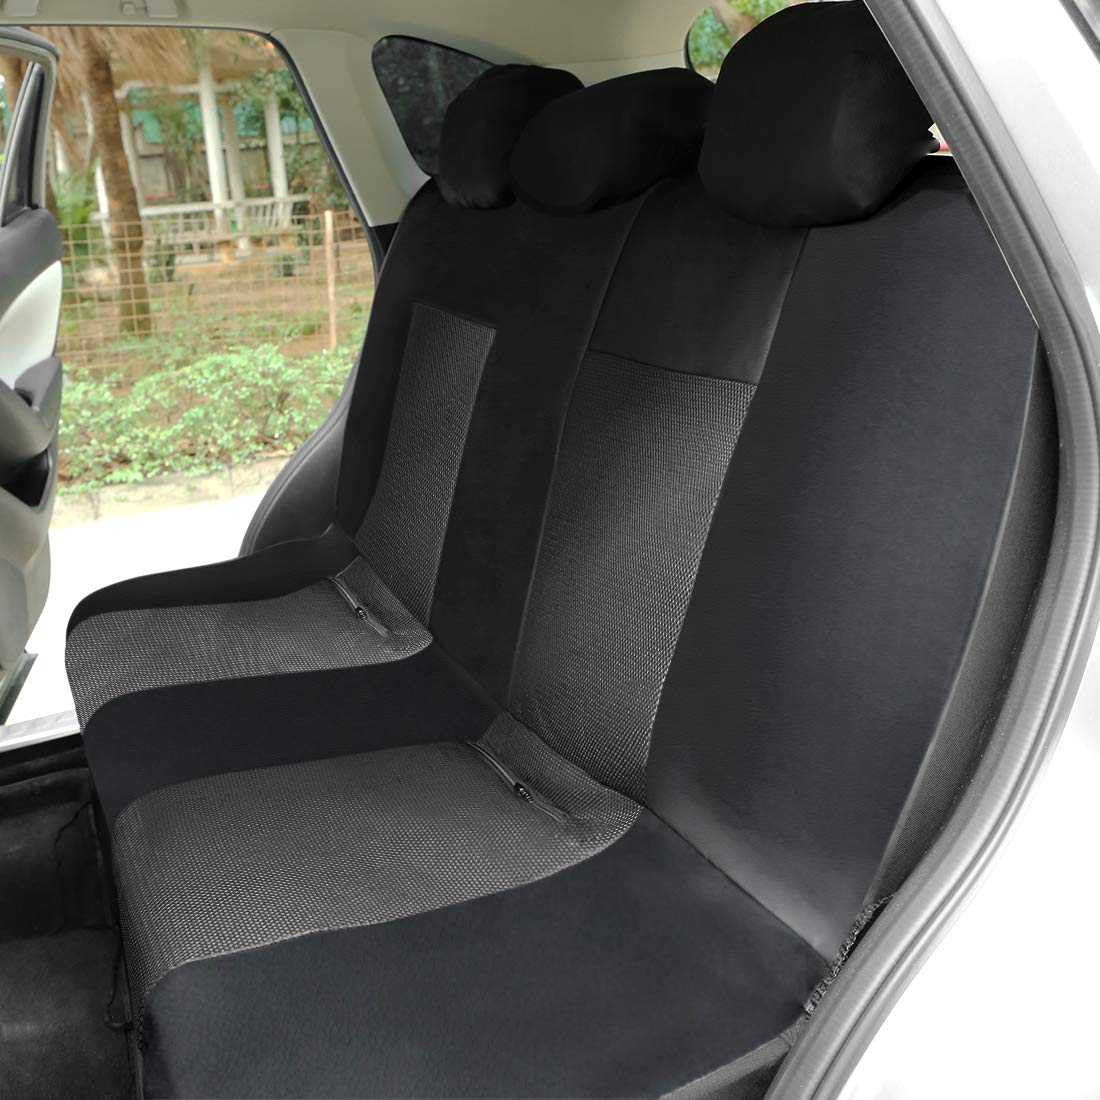 uxcell Universal Front Rear Seat Cover Cushion Mat Protector Compatible for Car SUV Truck Black Gray Polyester Mesh PU Leather 8pcs